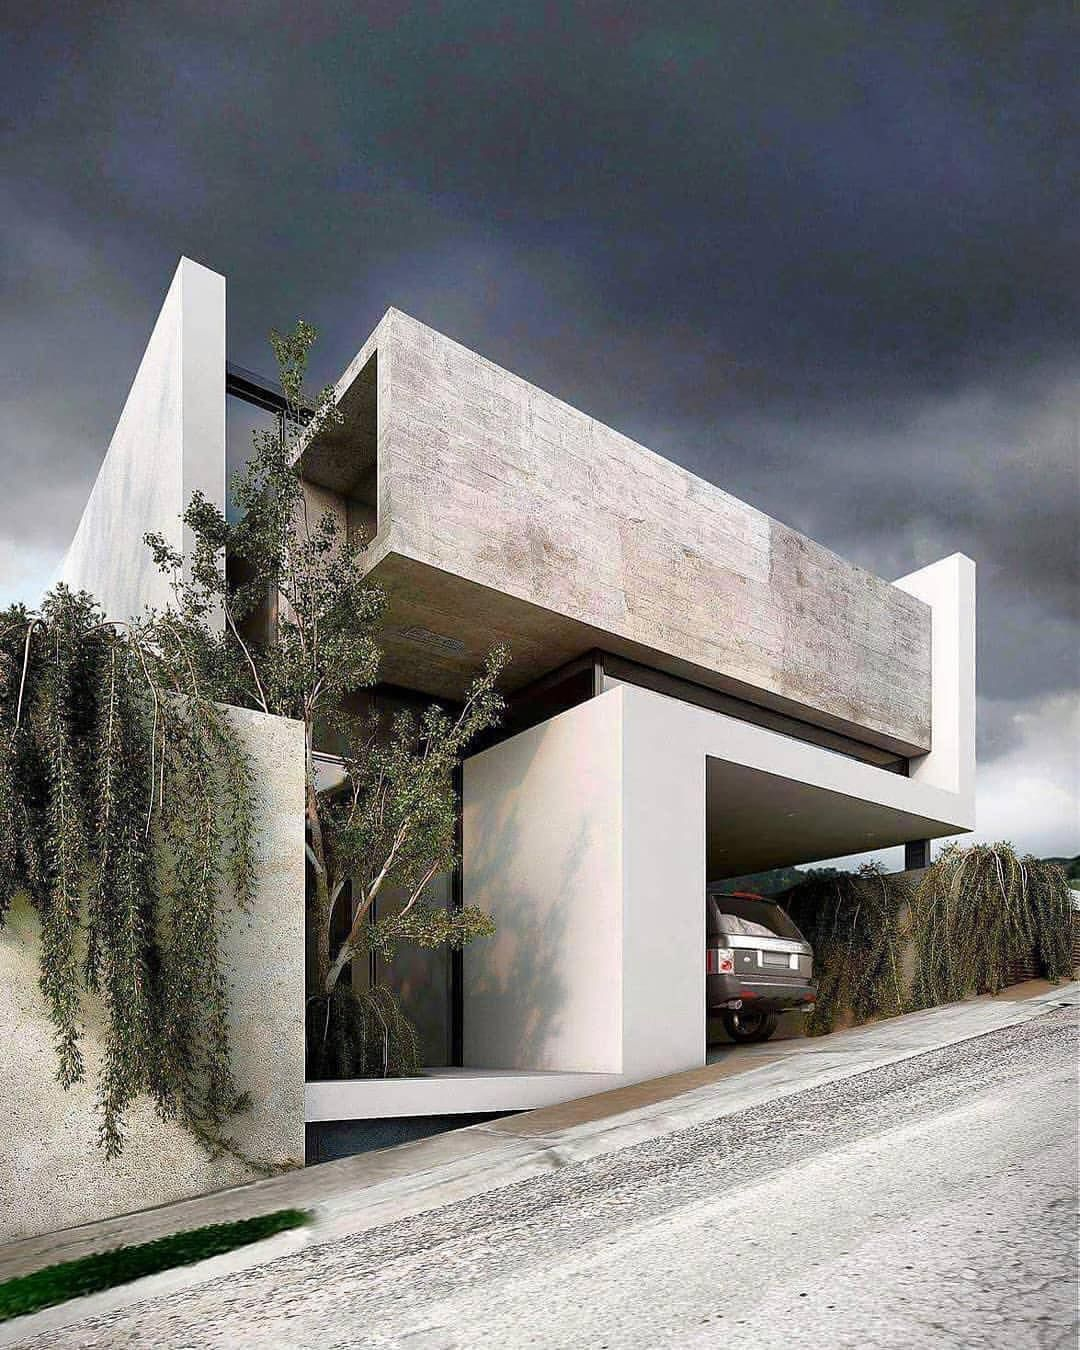 Minimalist House 85 Design: Lomas House. By VISUARQ Studio 📐 #artsytecture ______ Welcome To The Page @artsytecture ! (710K